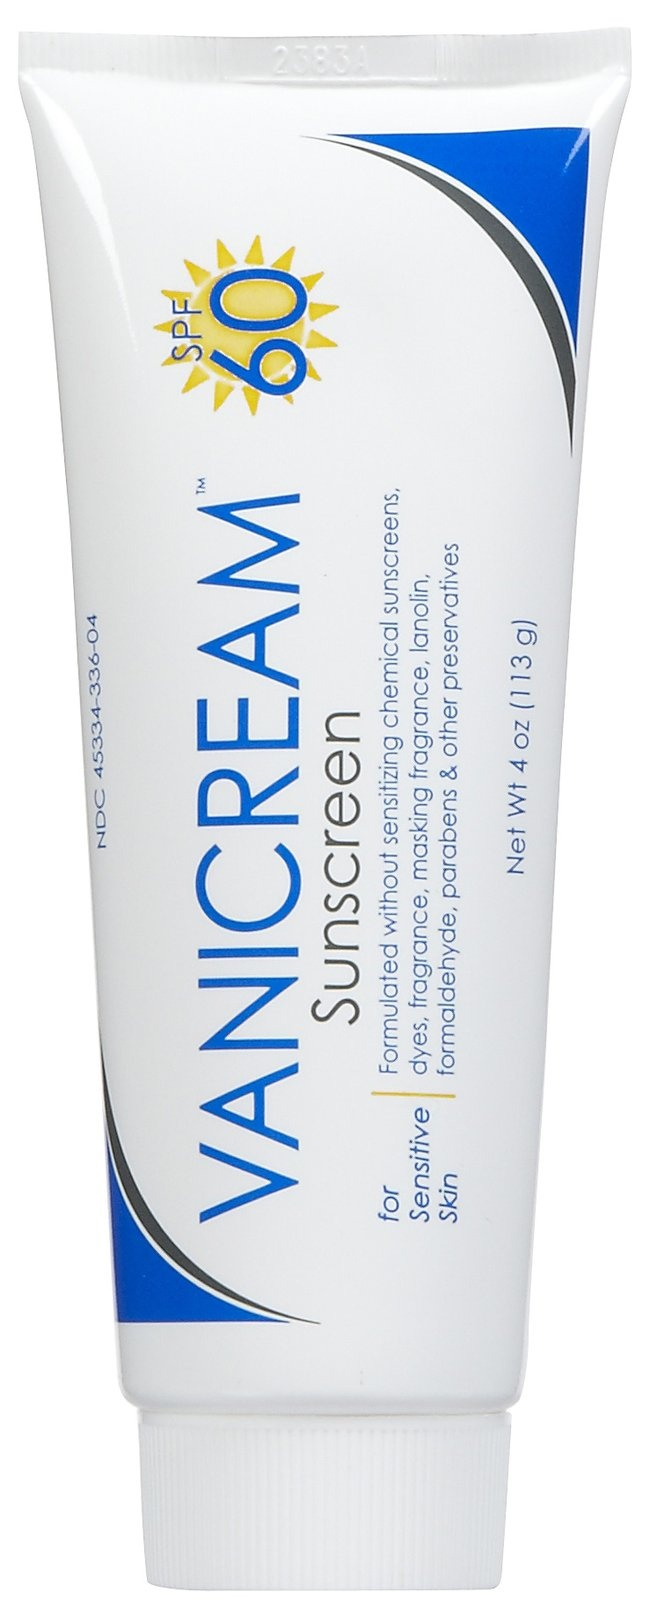 Vanicream Sunscreen SPF 60 4 oz Best Price. doc said